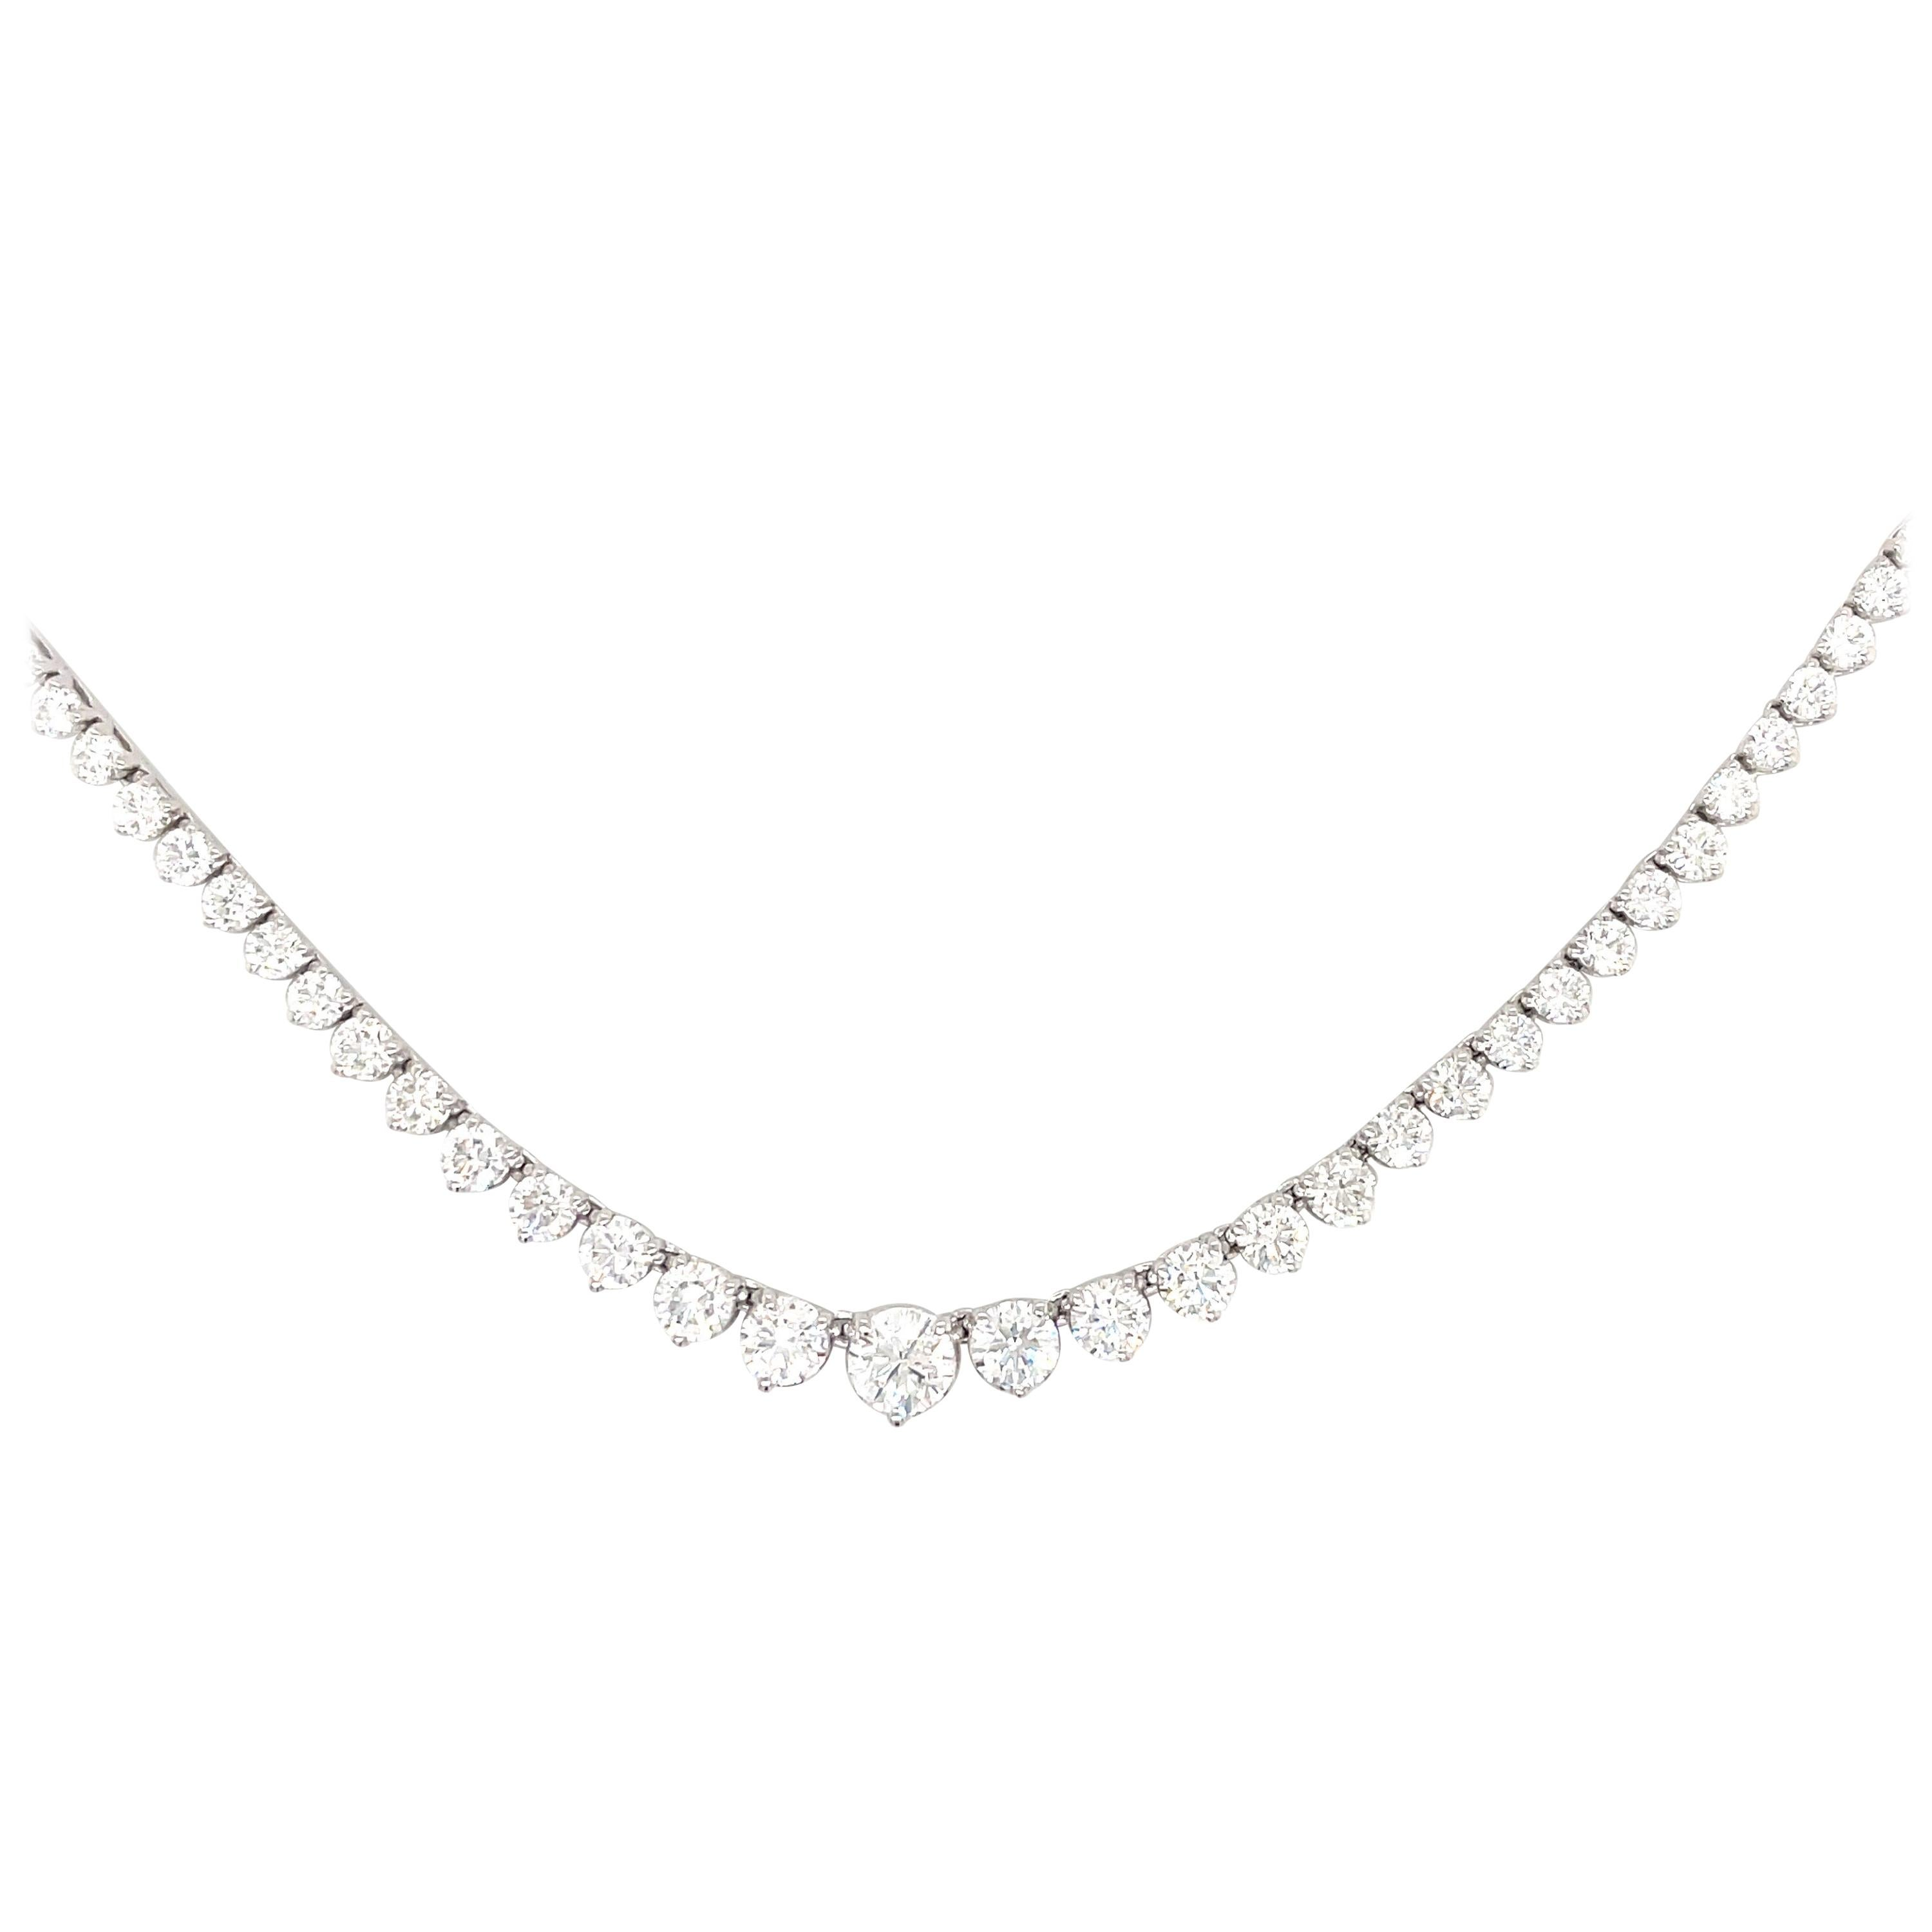 GIA Certified Diamond Riviere Necklace 10.12 Carats G SI2 18 Karat White Gold